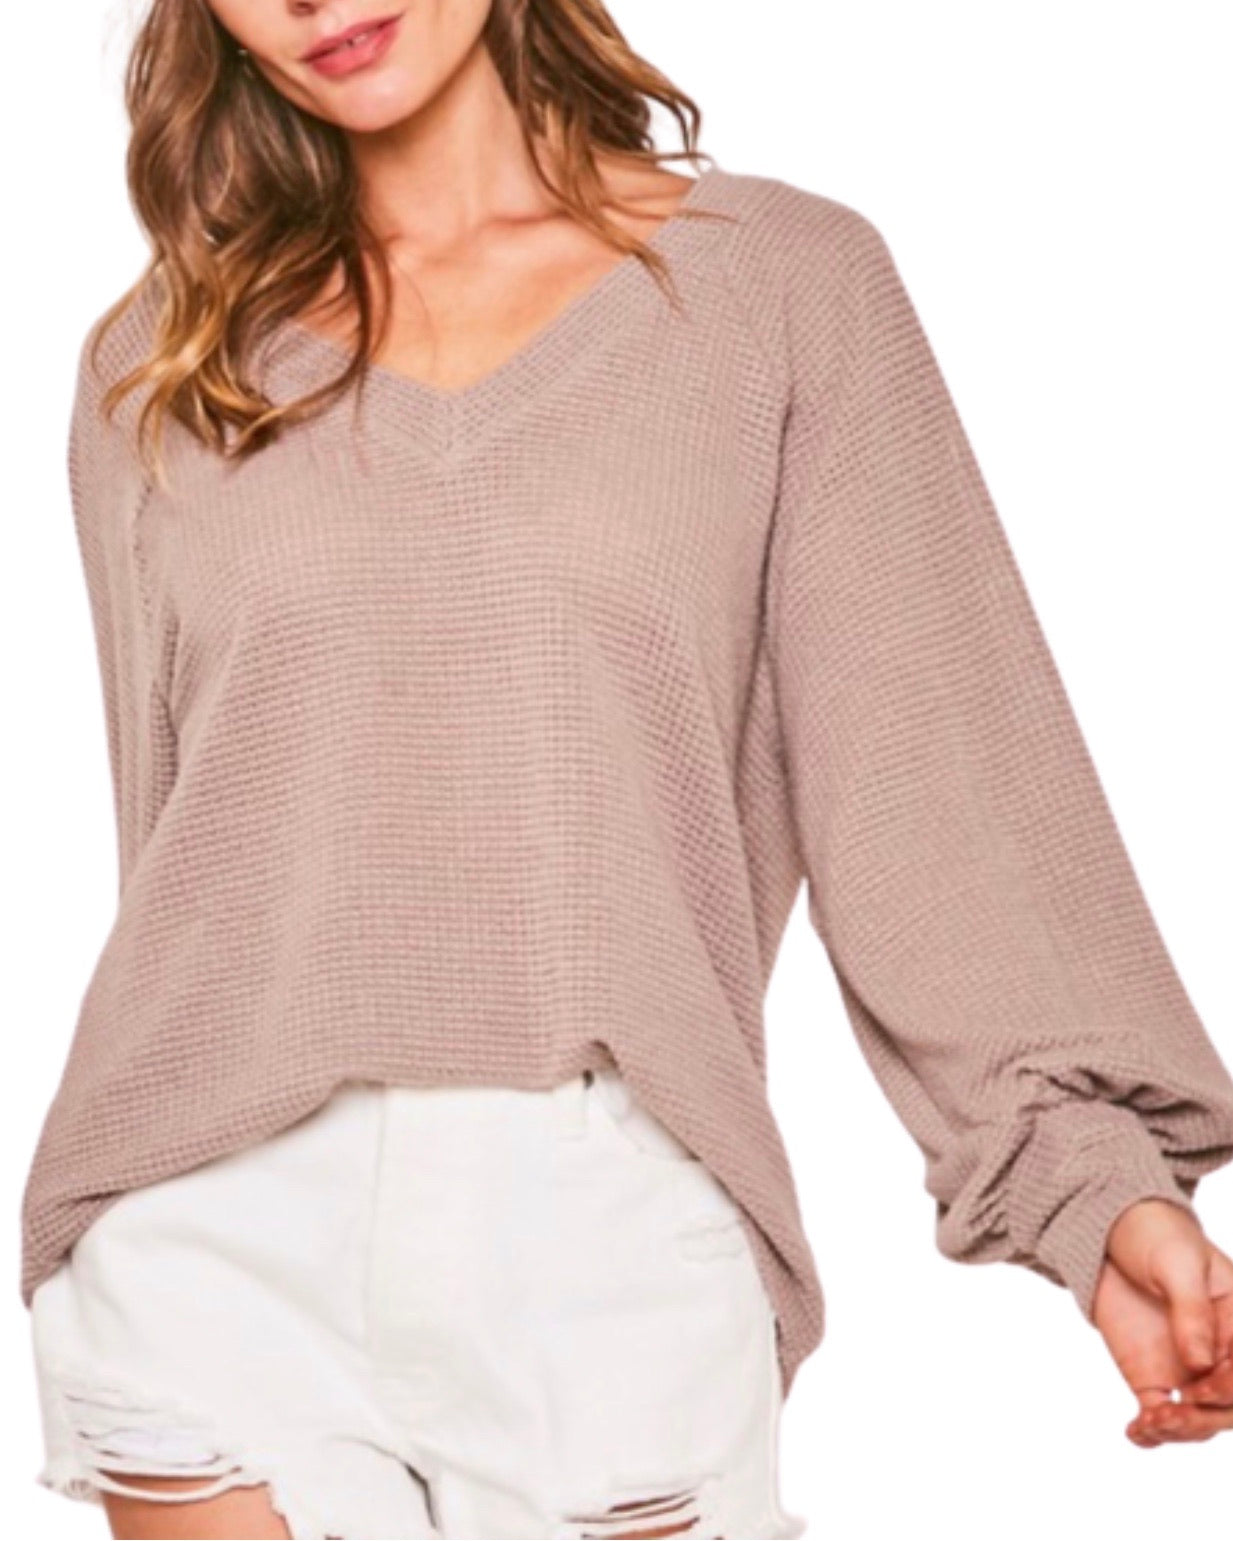 New ! Autumn Textured Knit Long Sleeve Top in Terra Cotta - Glamco Boutique